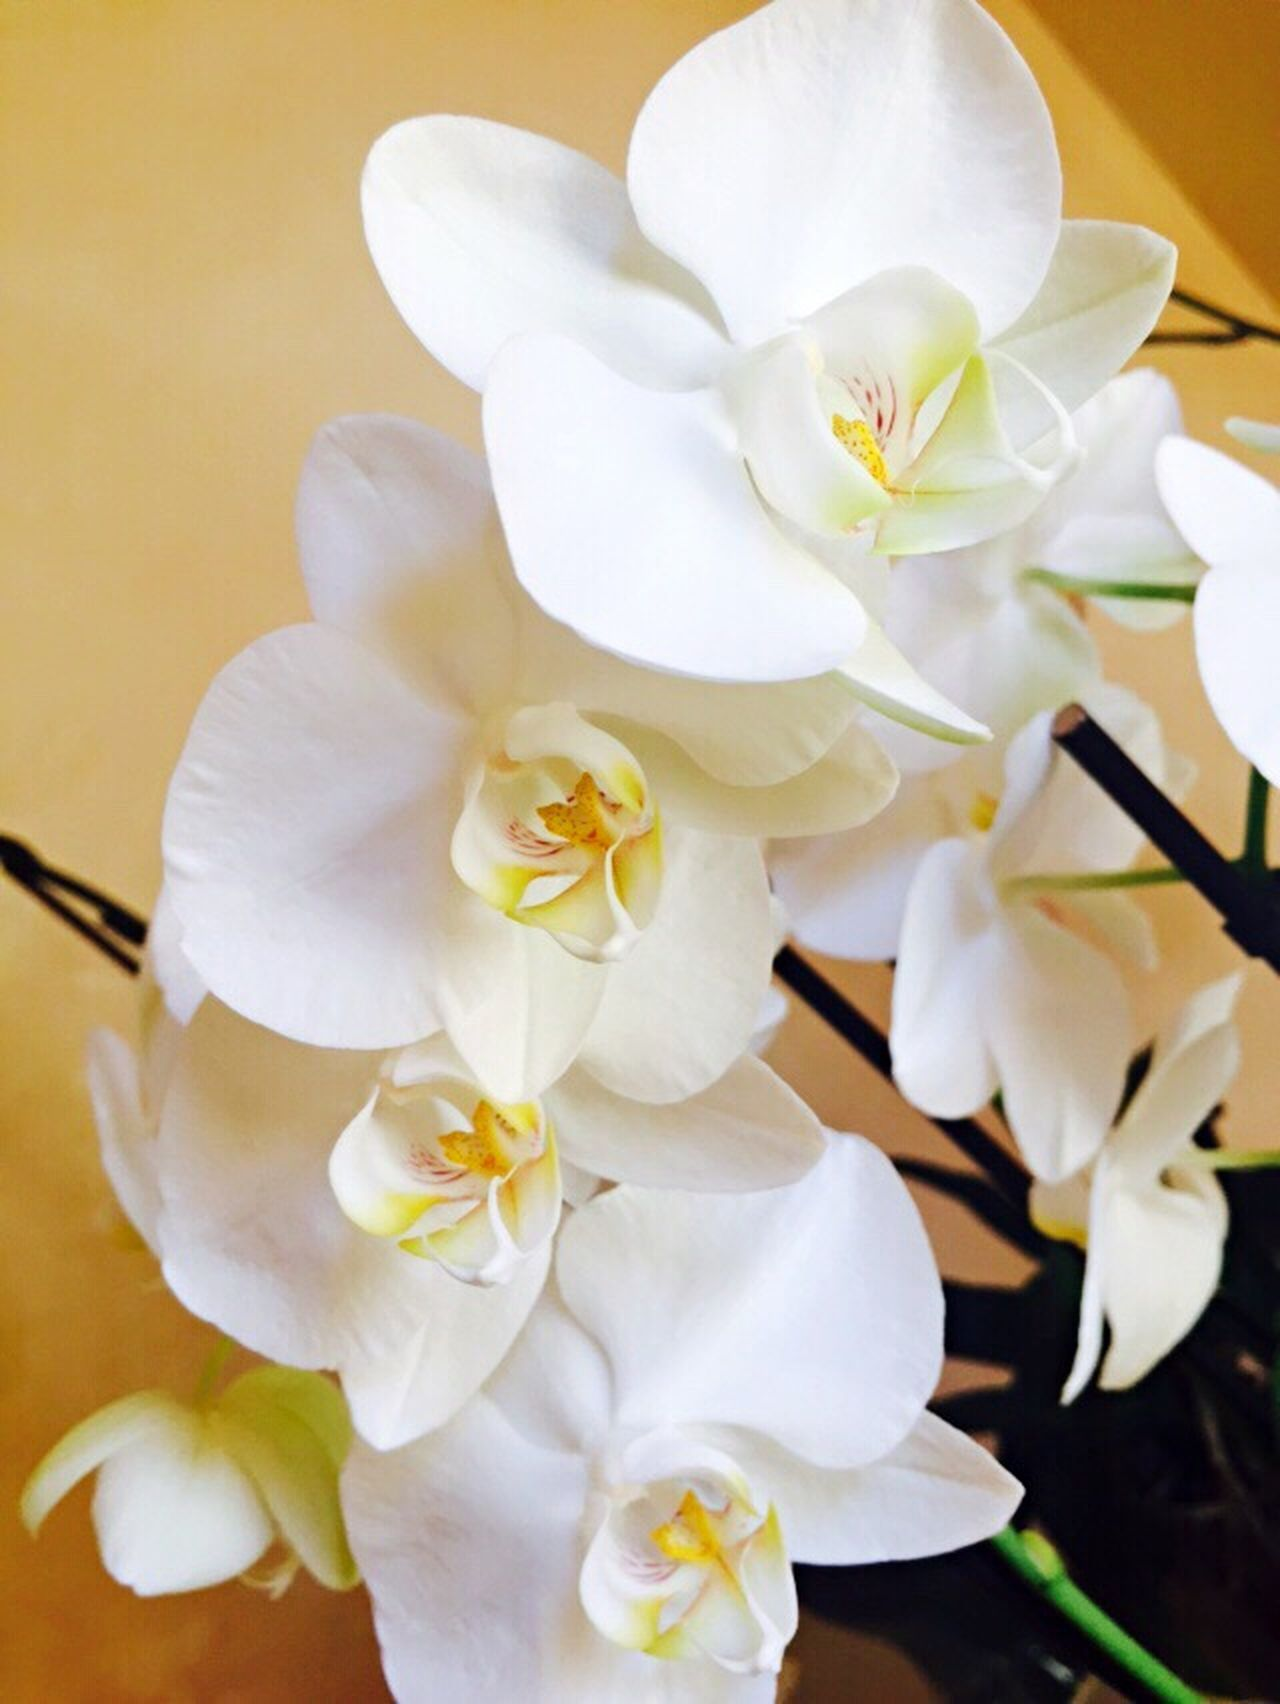 Flower Fragility Growth Nature White Color Petal Close-up Beauty In Nature Flower Head No People Freshness Plant Day Outdoors Colour Of Life Orchids Emyembest Orchidslover Orchid Flowers Orchids Collection Orchid Blossoms Orchid Flower Orchids